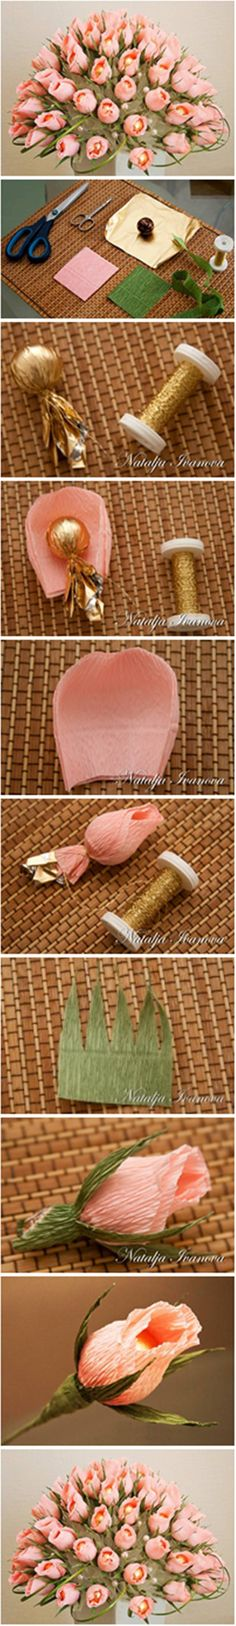 DIY Beautiful Chocolate and Crepe Paper Flower Bouquet #craft #decor #paper_flower